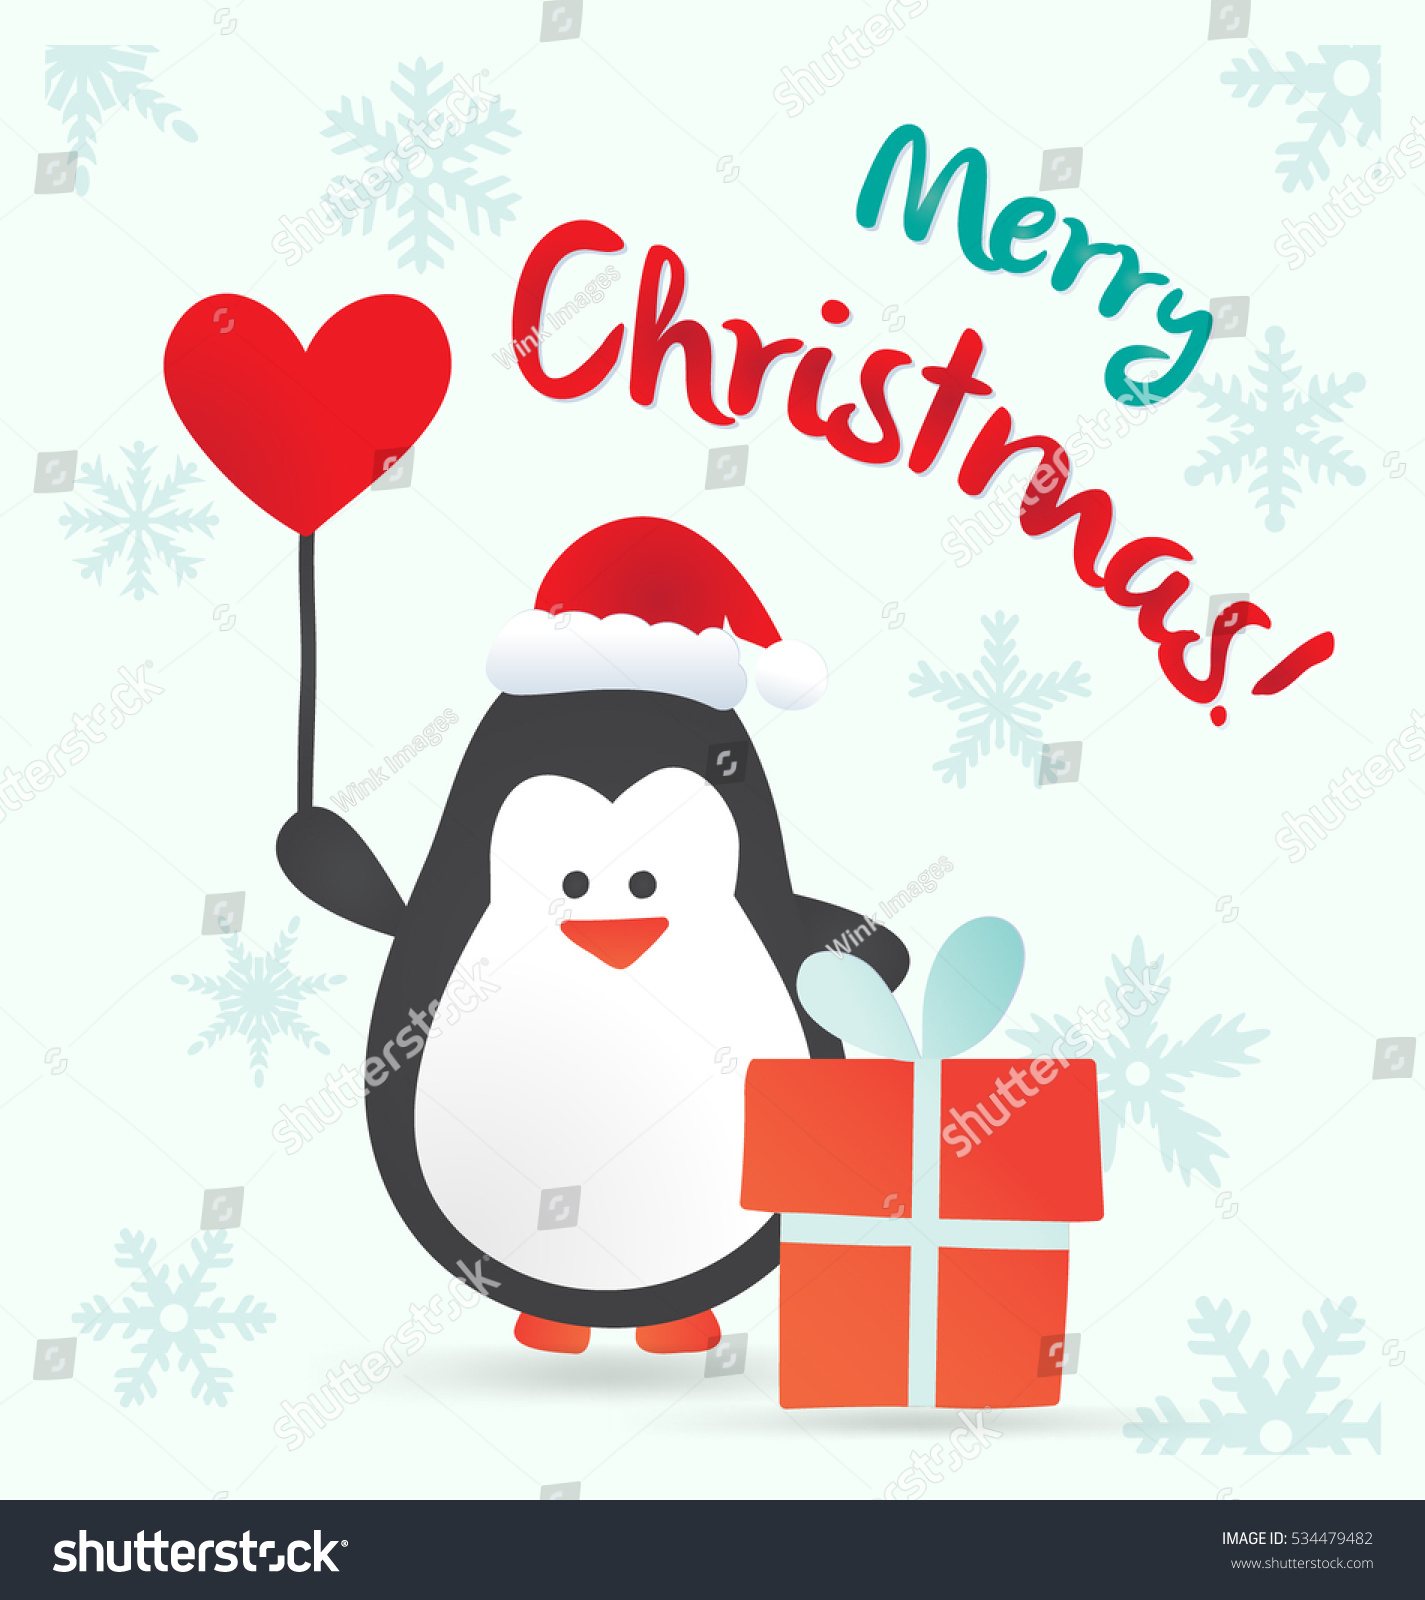 Merry christmas greeting card template cute stock vector royalty merry christmas greeting card template with cute penguin character m4hsunfo